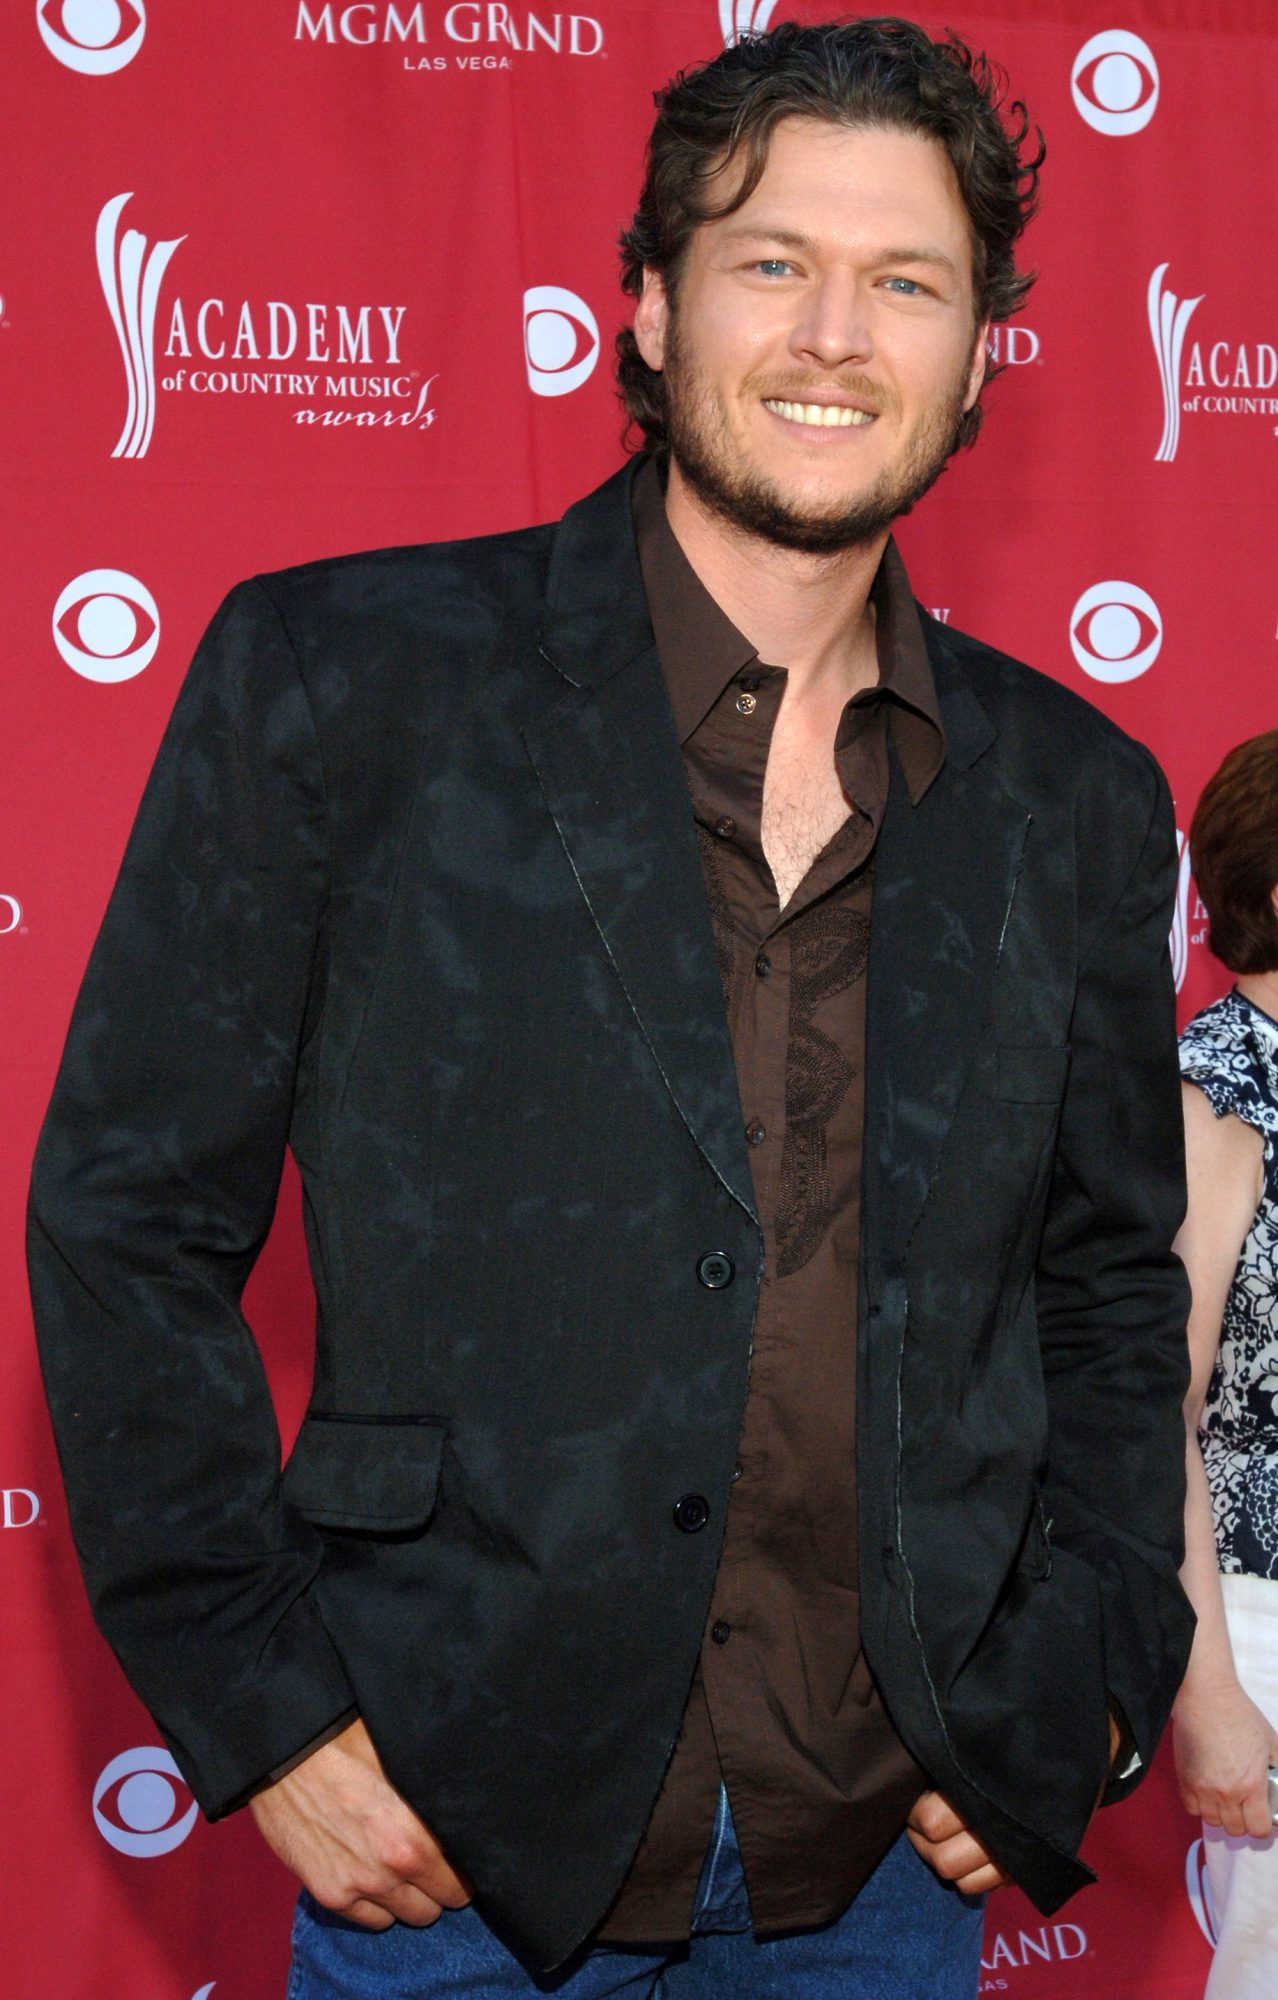 42nd Academy of Country Music Awards - Red Carpet